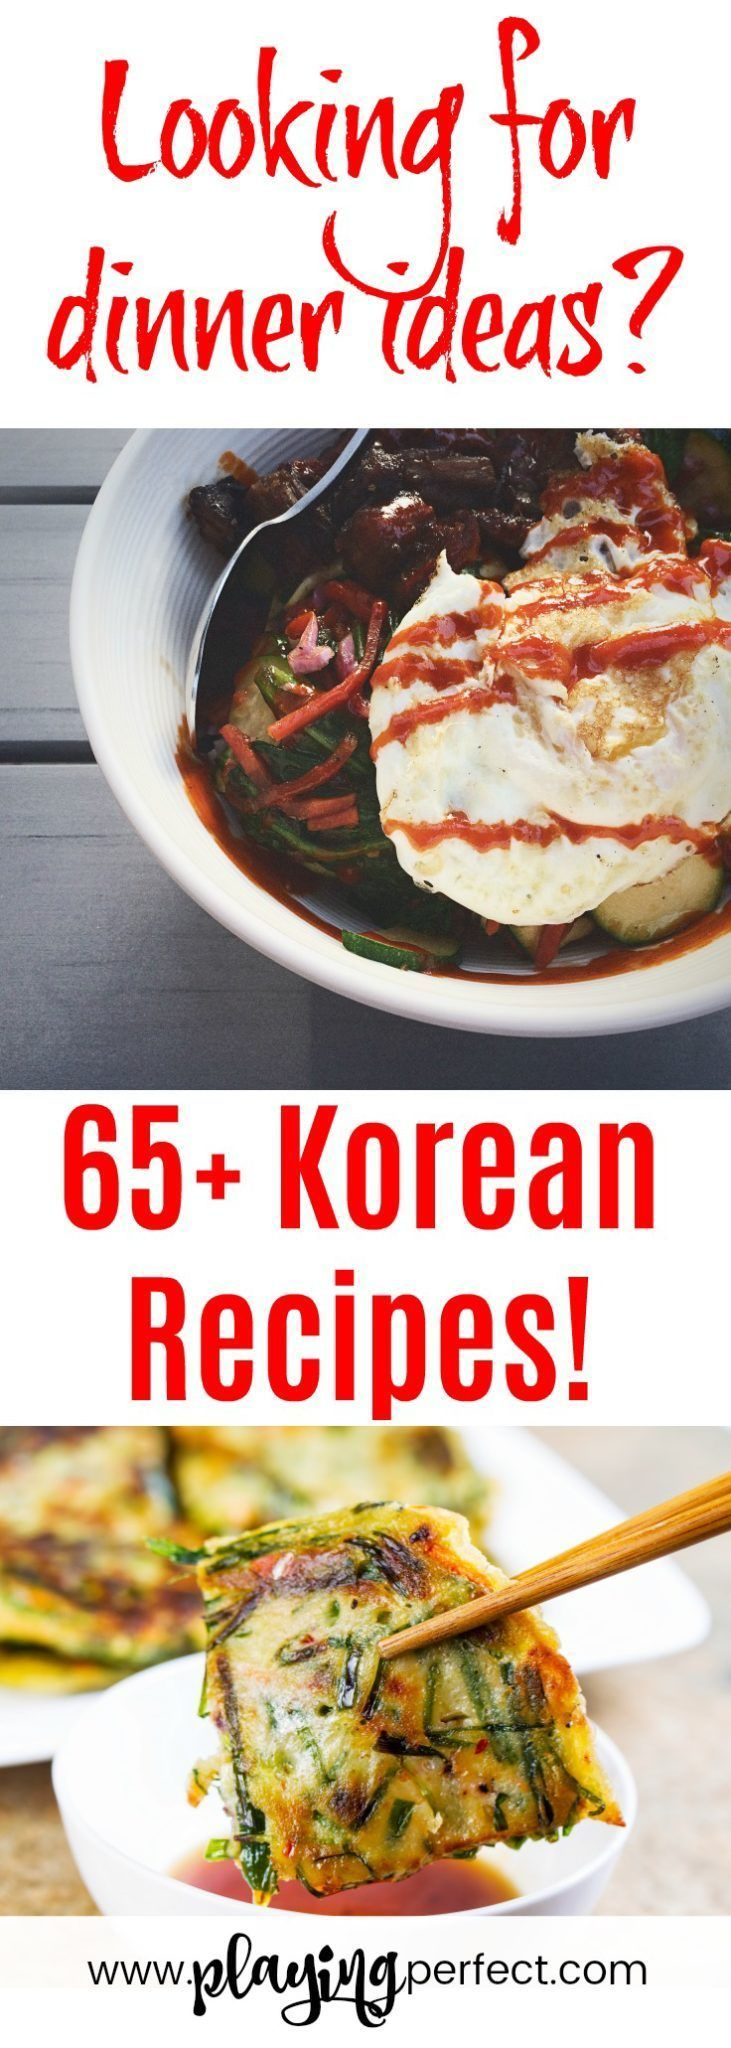 Korean food for homecooked meals! Korean dinner ideas with Korean instant pot recipes, Korean authentic recipes, vegetarian Korean food, Korean side dishes, and Korean desserts! FREE Meal Planner printable pack too! | playingperfect.com | #koreanfood #korean #koreanmeal #yum #food #playingperfect #progressnotperfection #dinner #recipe #foodie #recipes #dinnerideas #meals #koreanrecipes